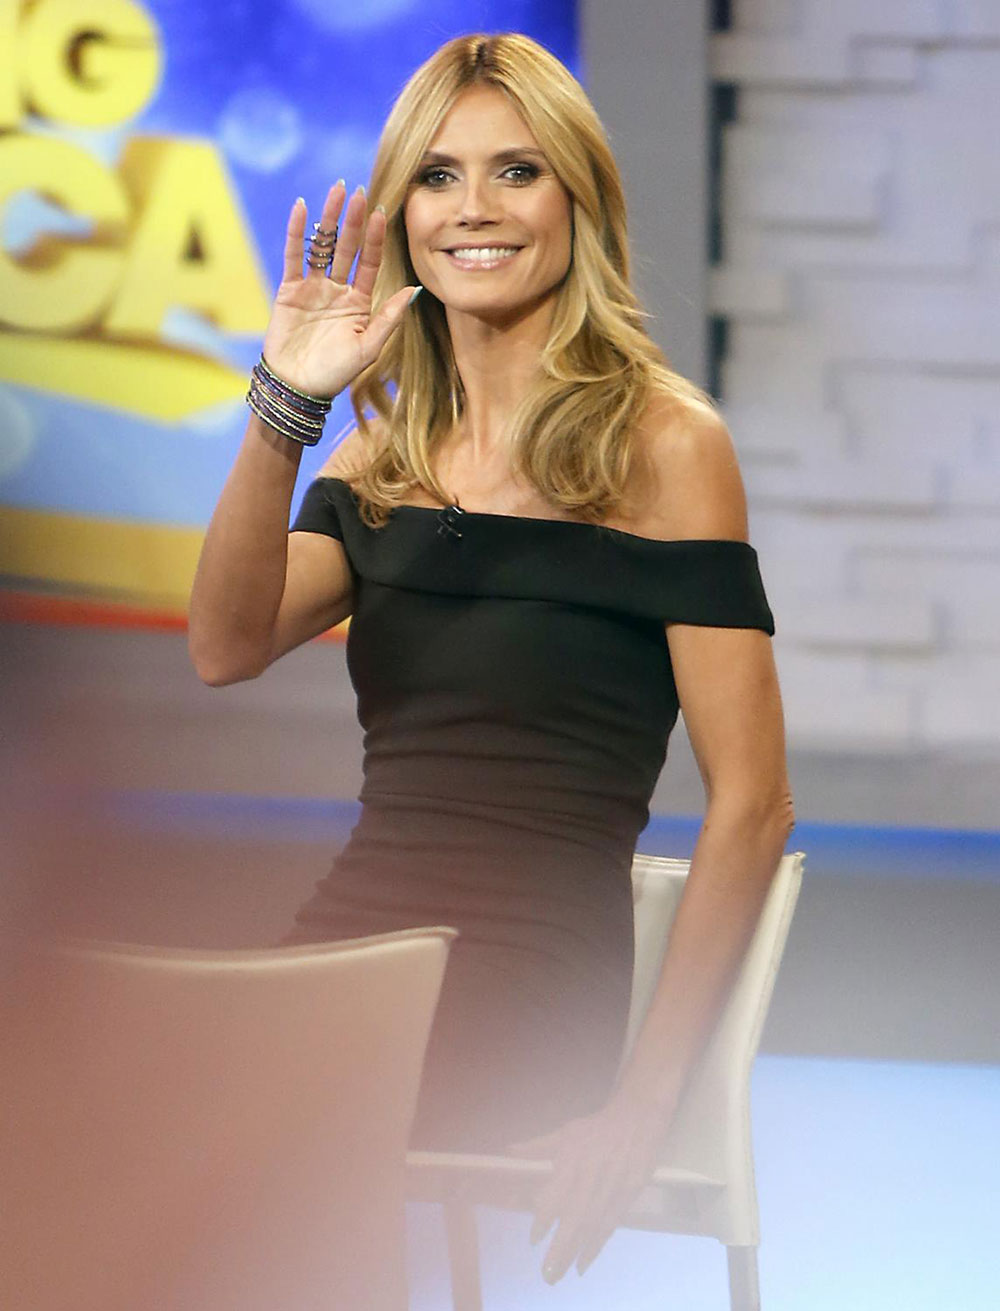 HEIDI KLUM On The Set Of Good Morning America HawtCelebs